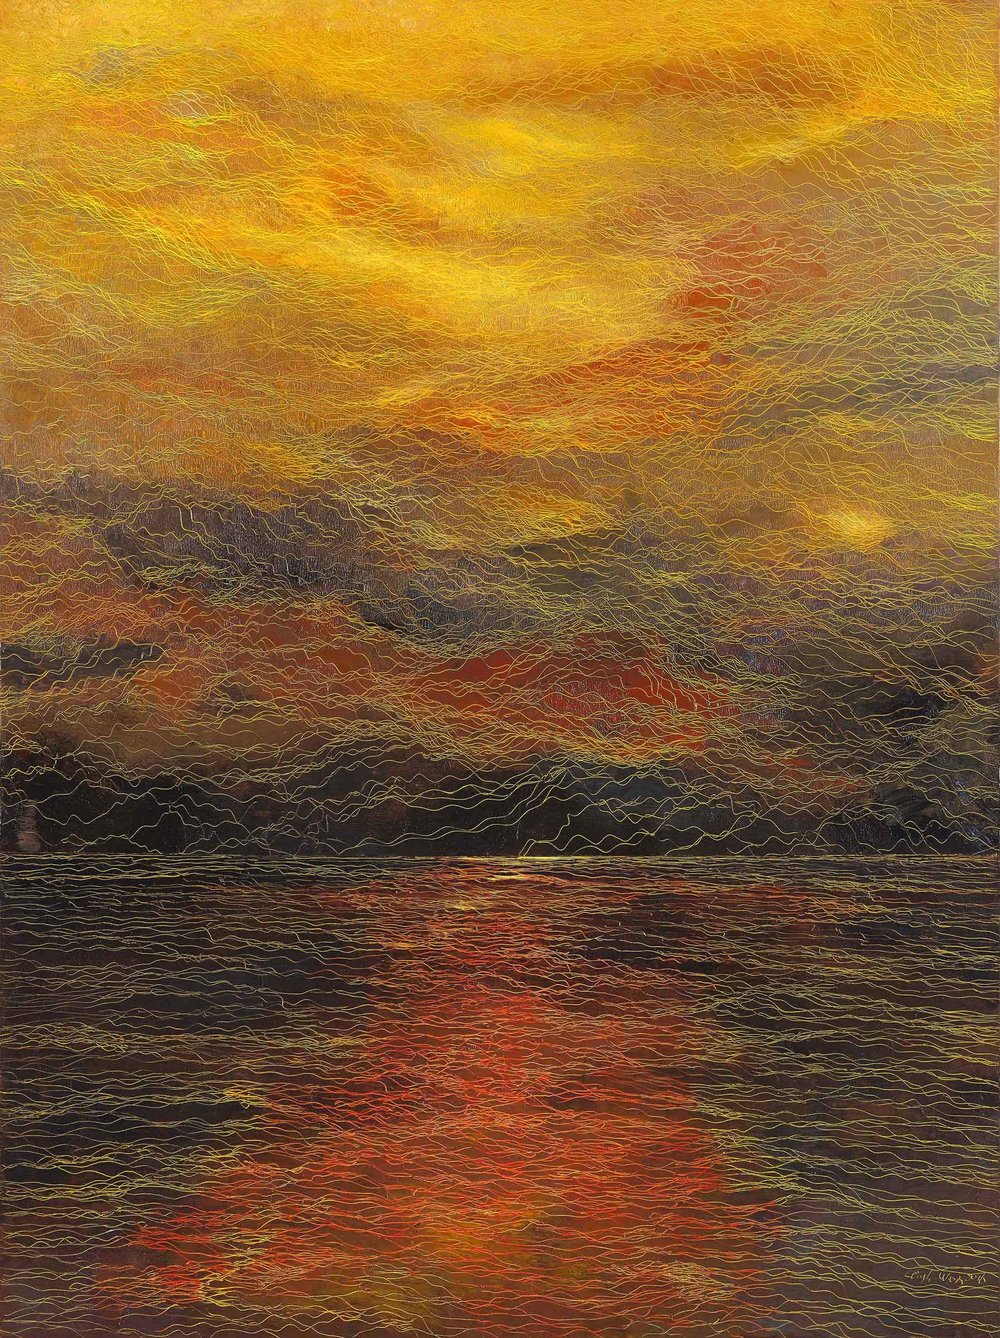 莫內與透納的對話 The conversation between Monet and Turner